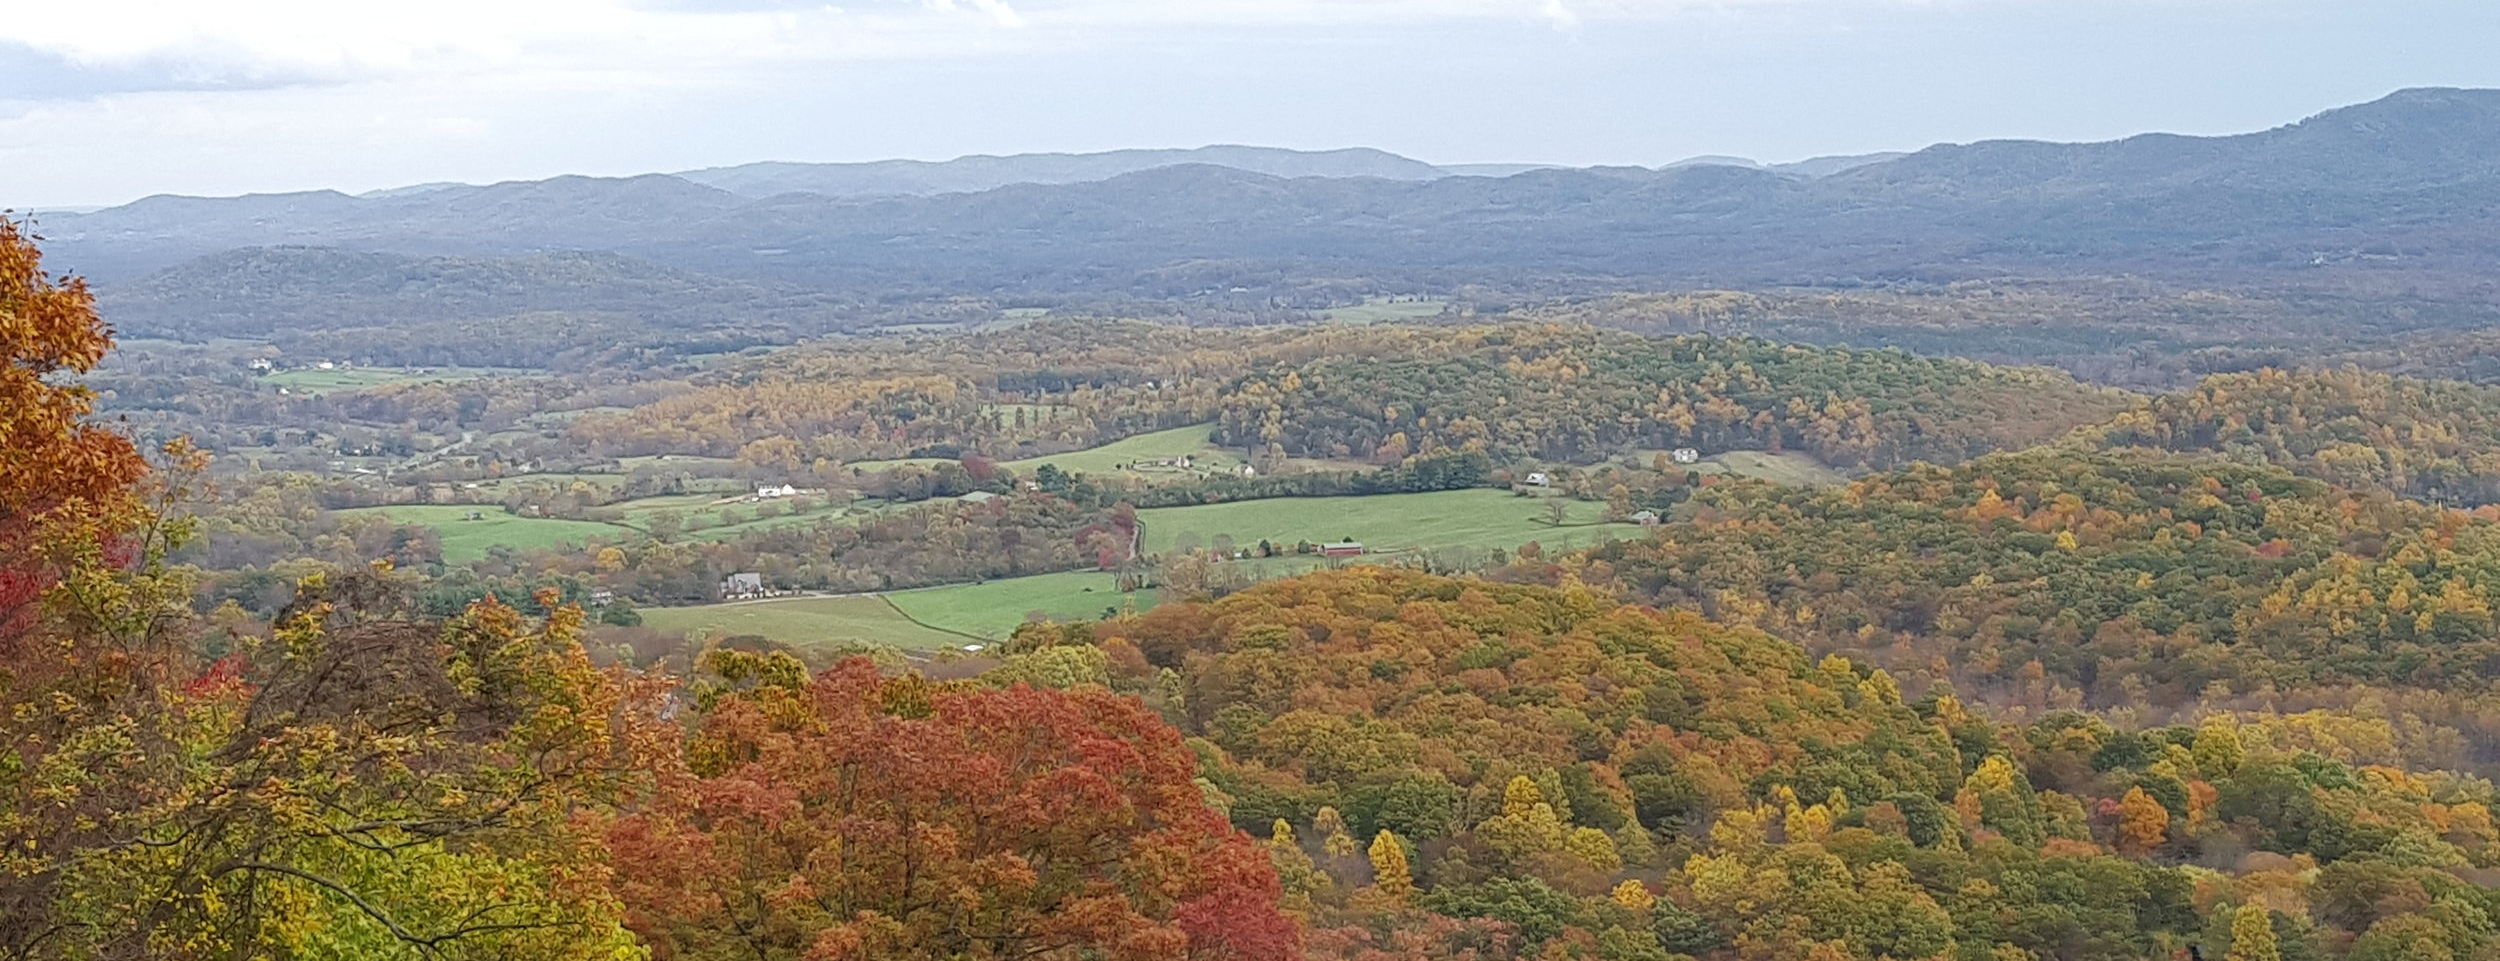 Looking down at the farm from Skyline Drive